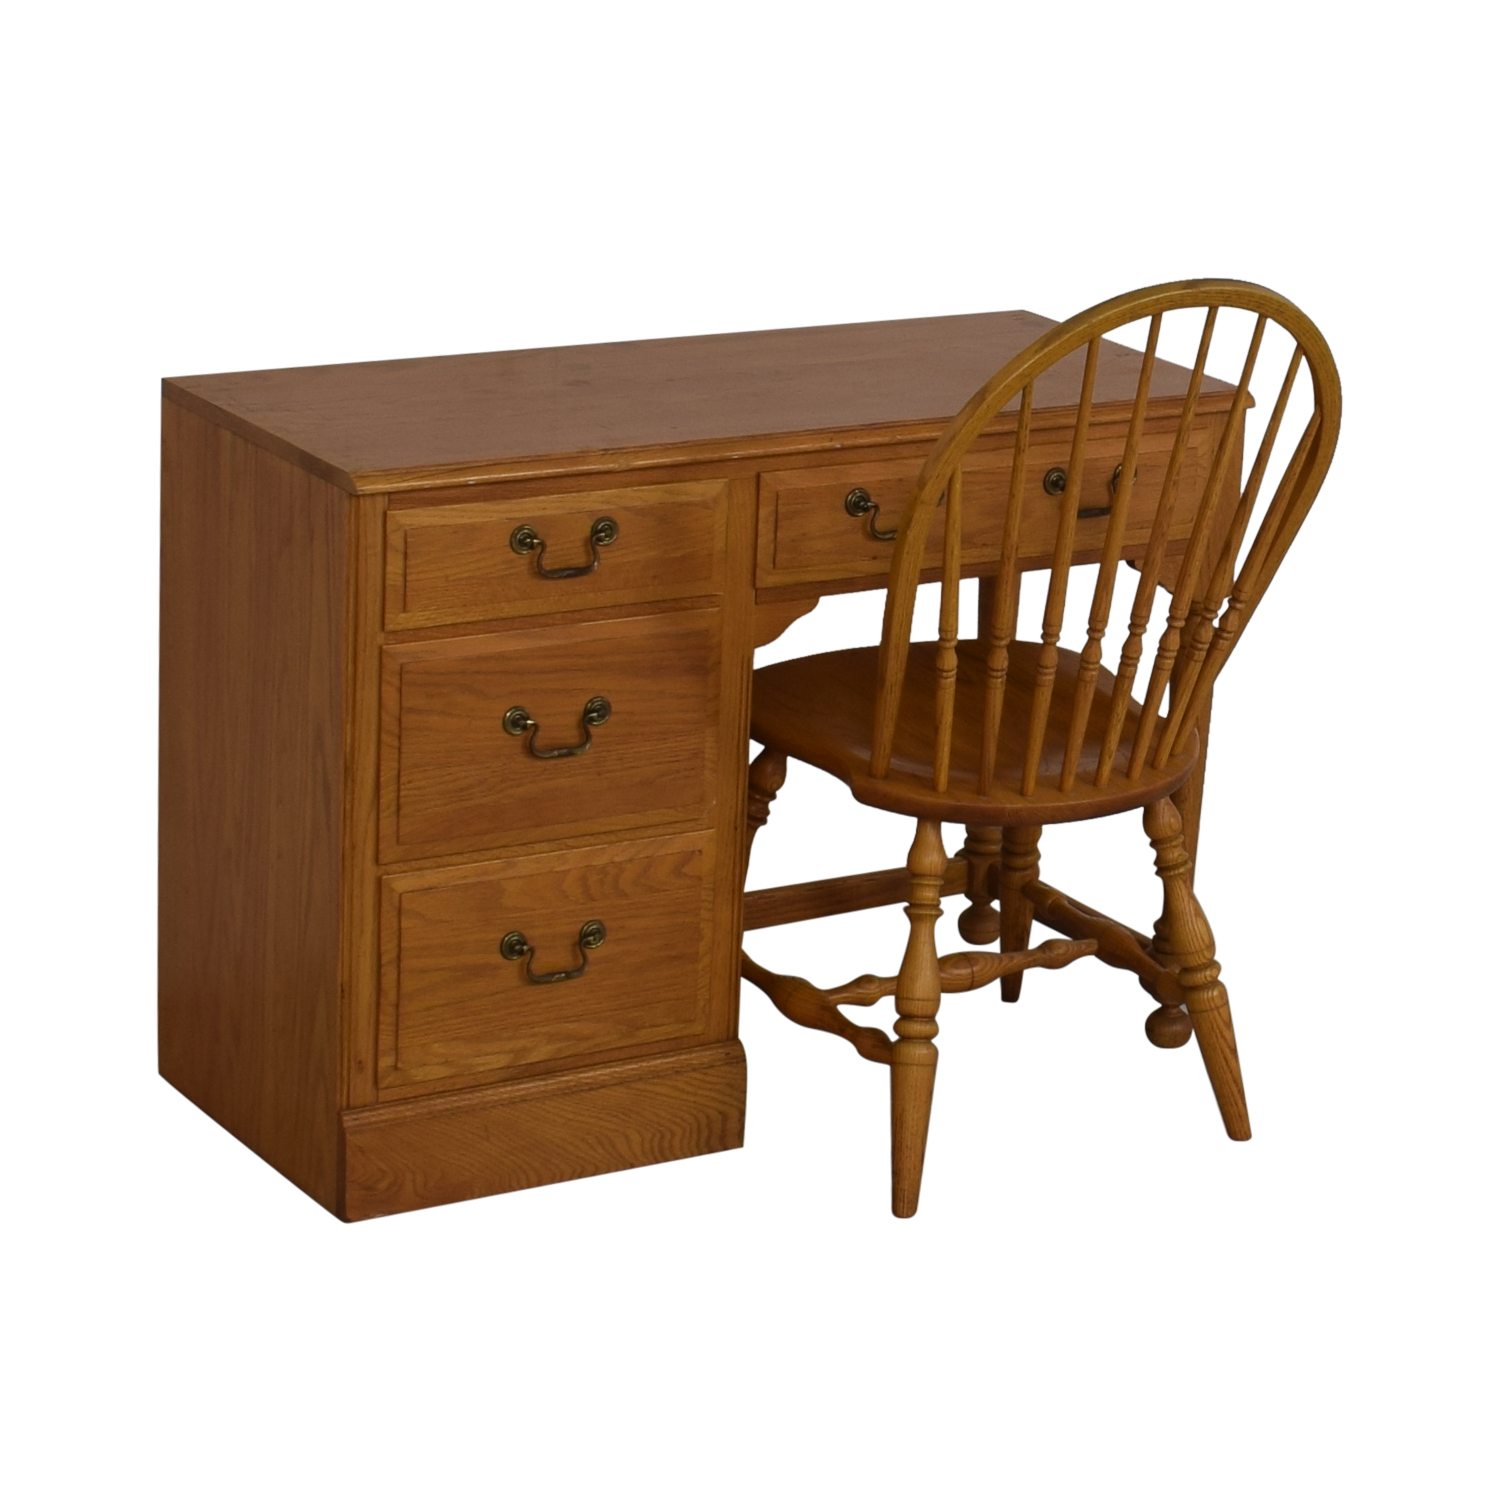 Ethan Allen Ethan Allen Canterbury Chippendale Desk and Chair on sale